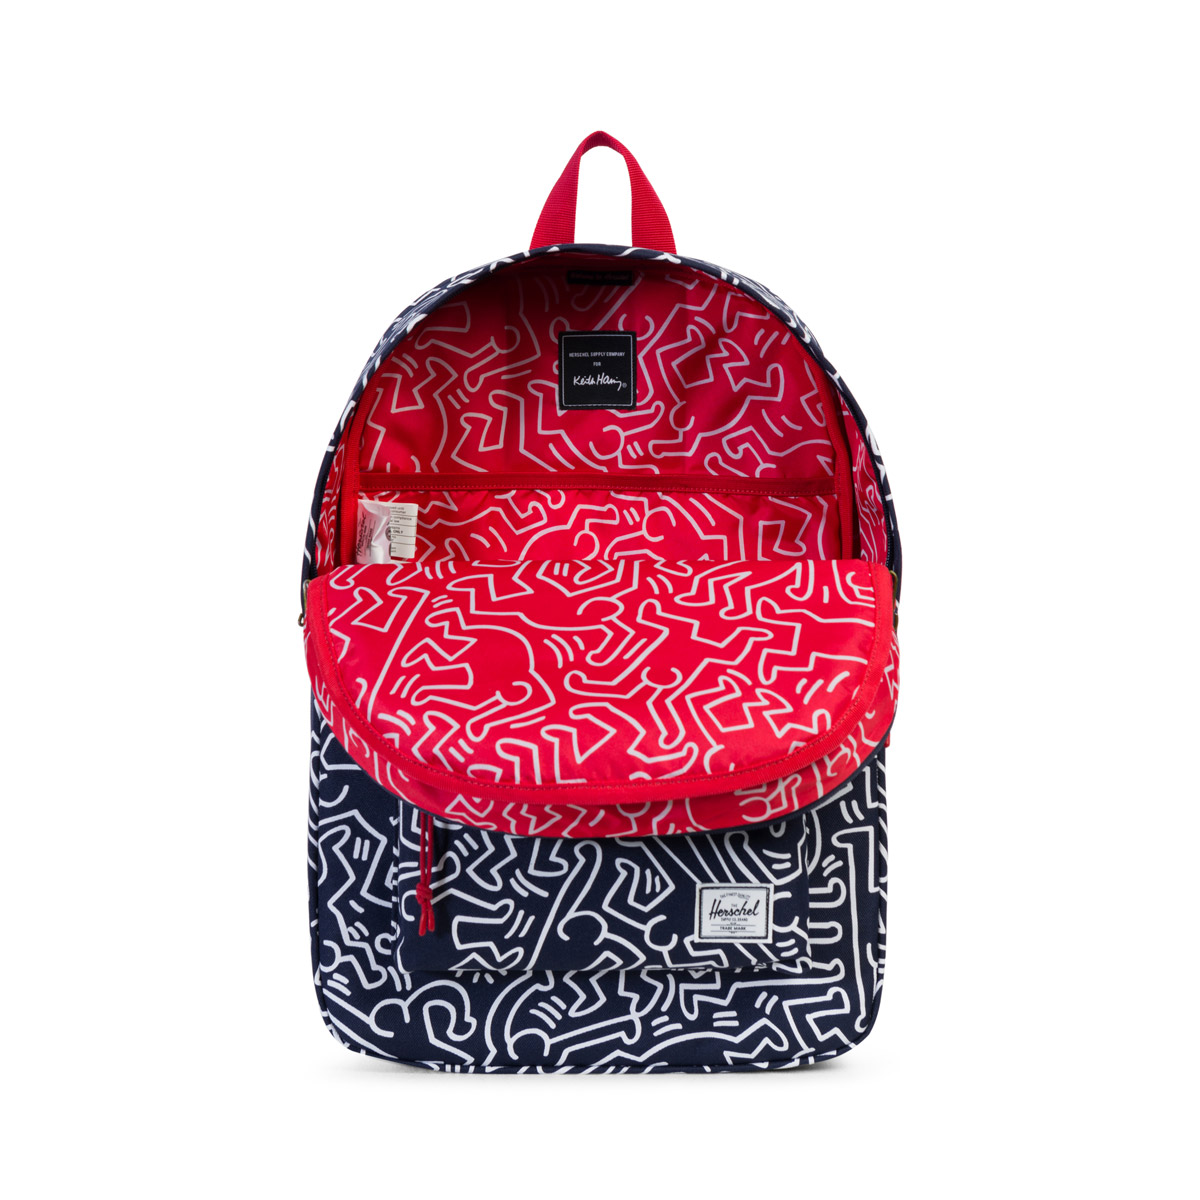 Herschel Supply Keith Haring Collection